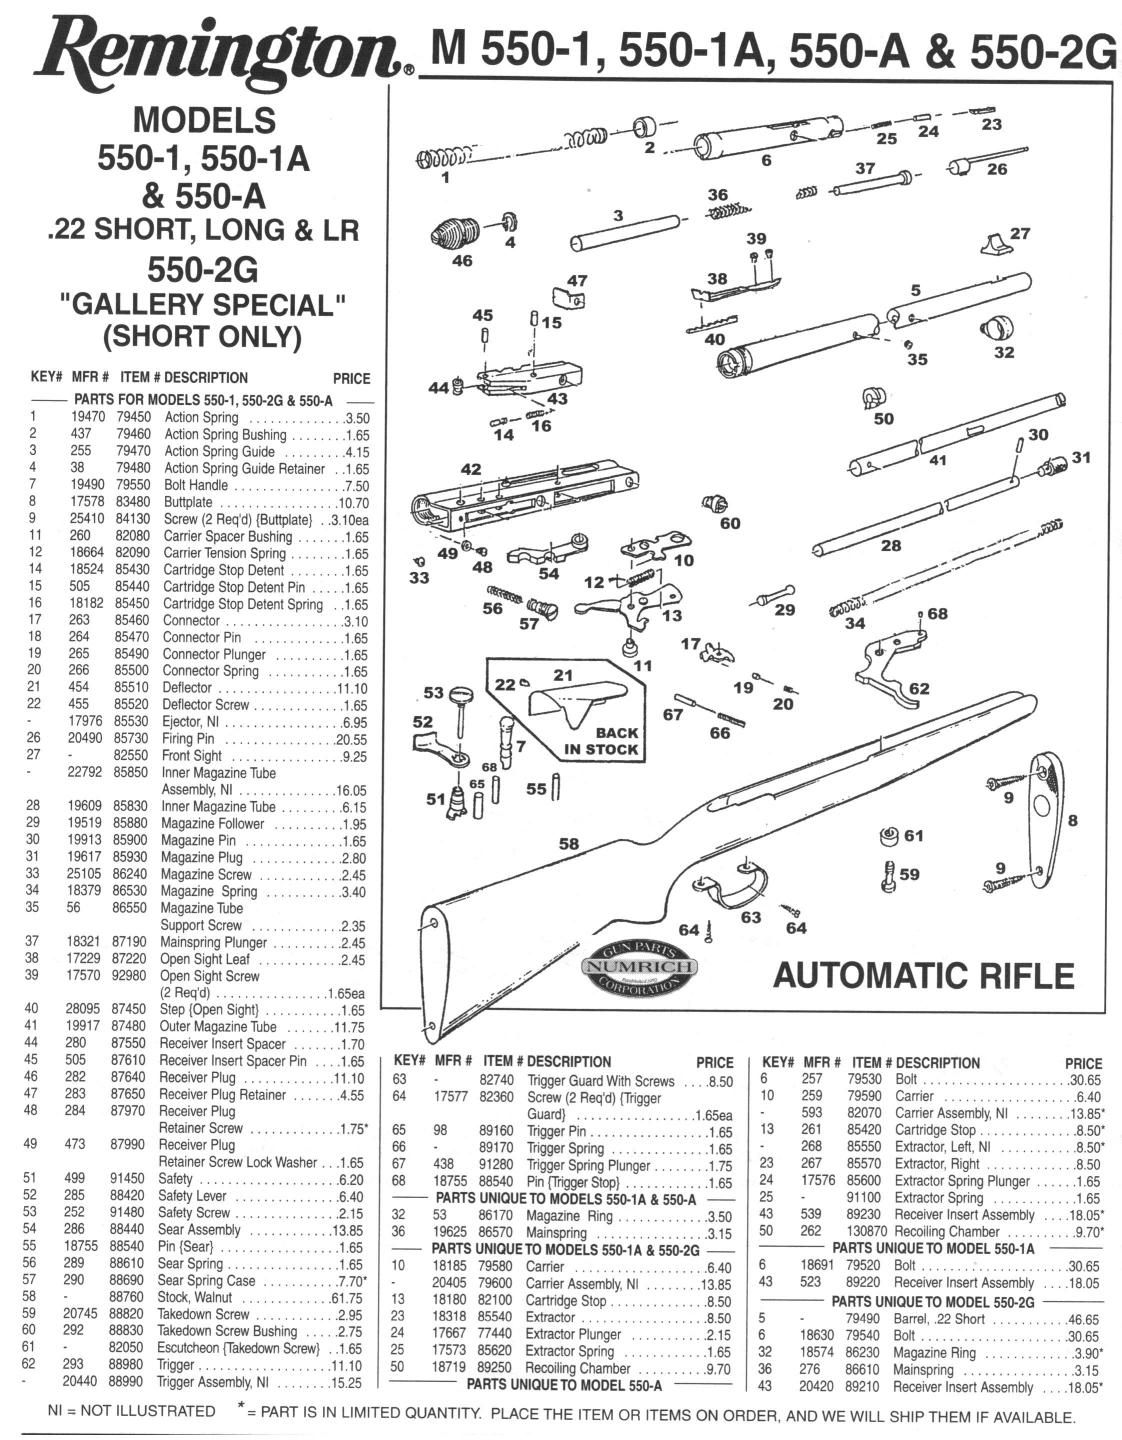 Marlin 550 Parts Diagram Everything About Wiring Glenfield Model 60 On Remington M 1 1a 550a 2g Diagrams Schematics Rh Pinterest Com 70 336